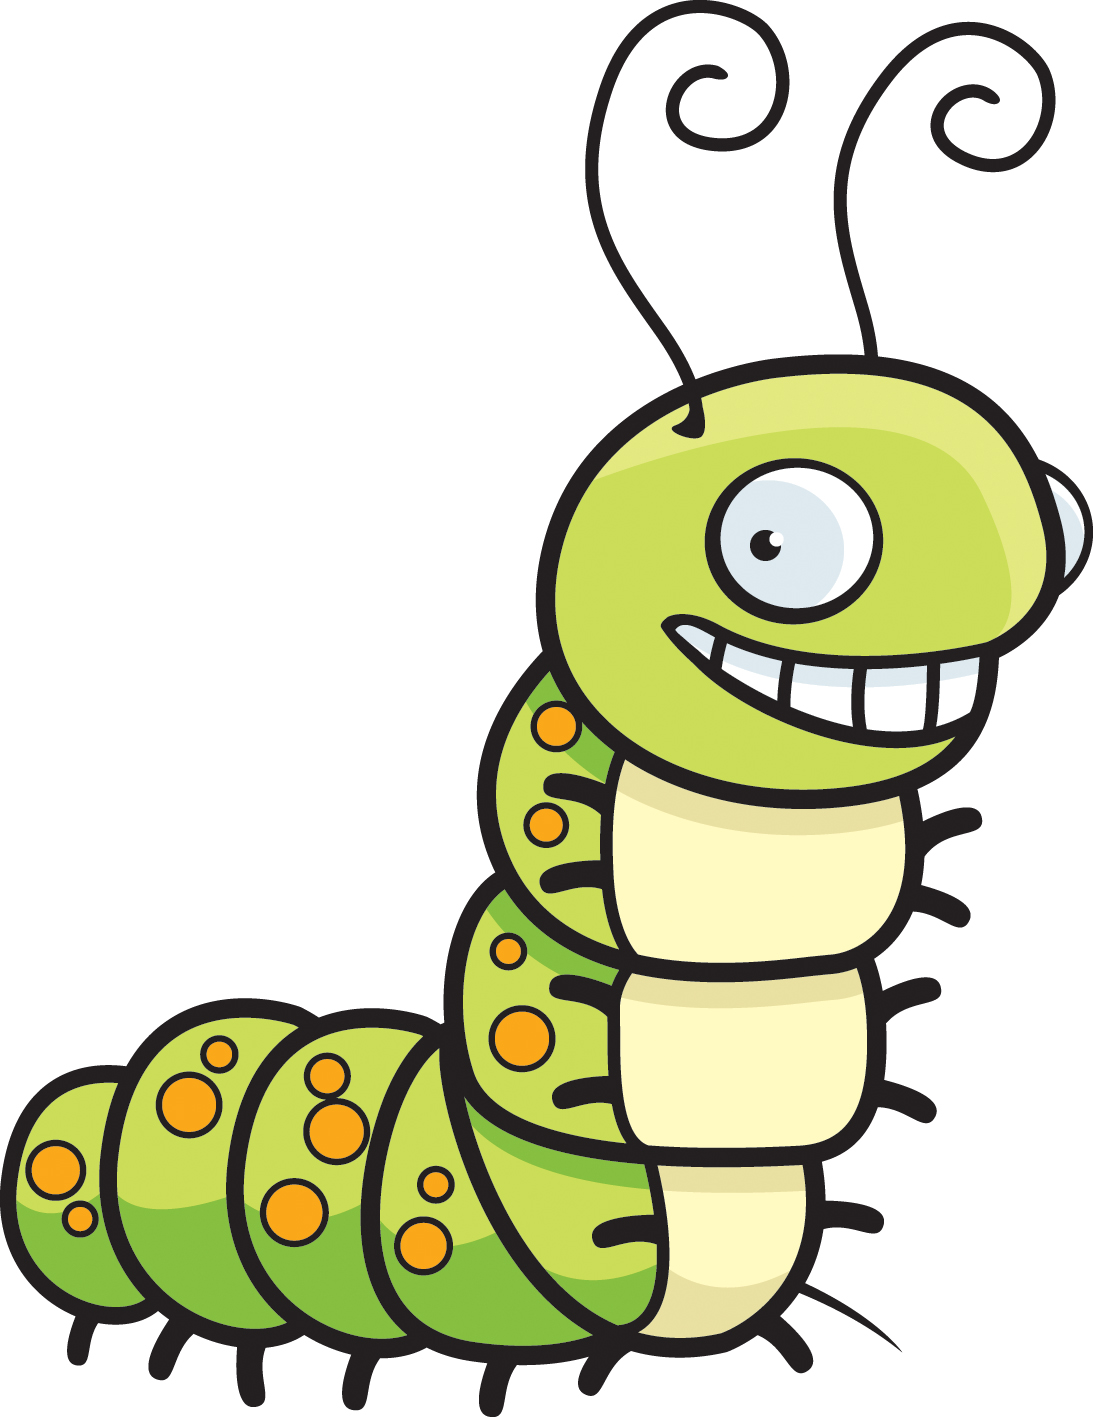 Caterpillar clipart #7